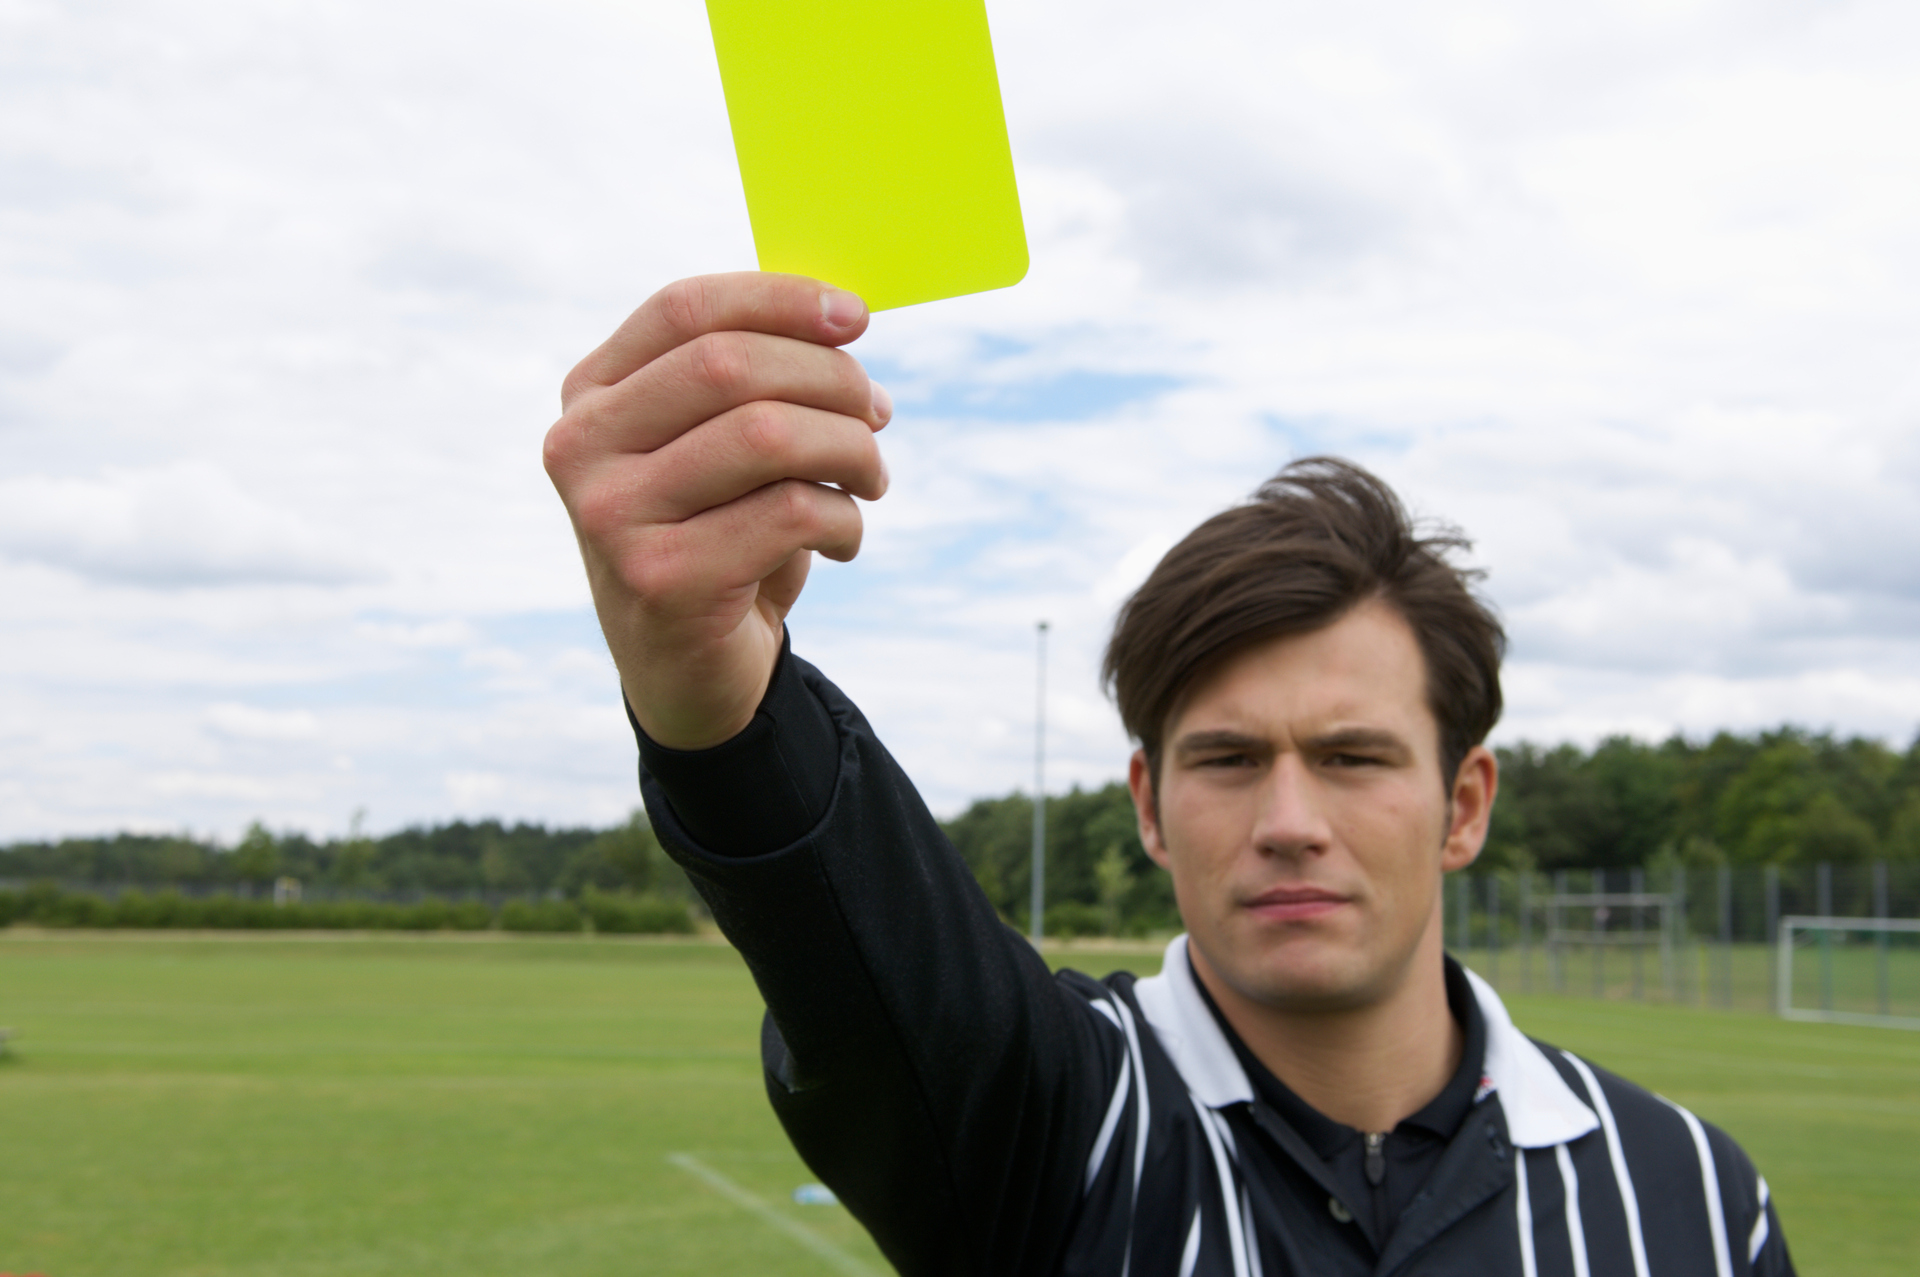 Pressure on young football referees as industry battles with recruitment